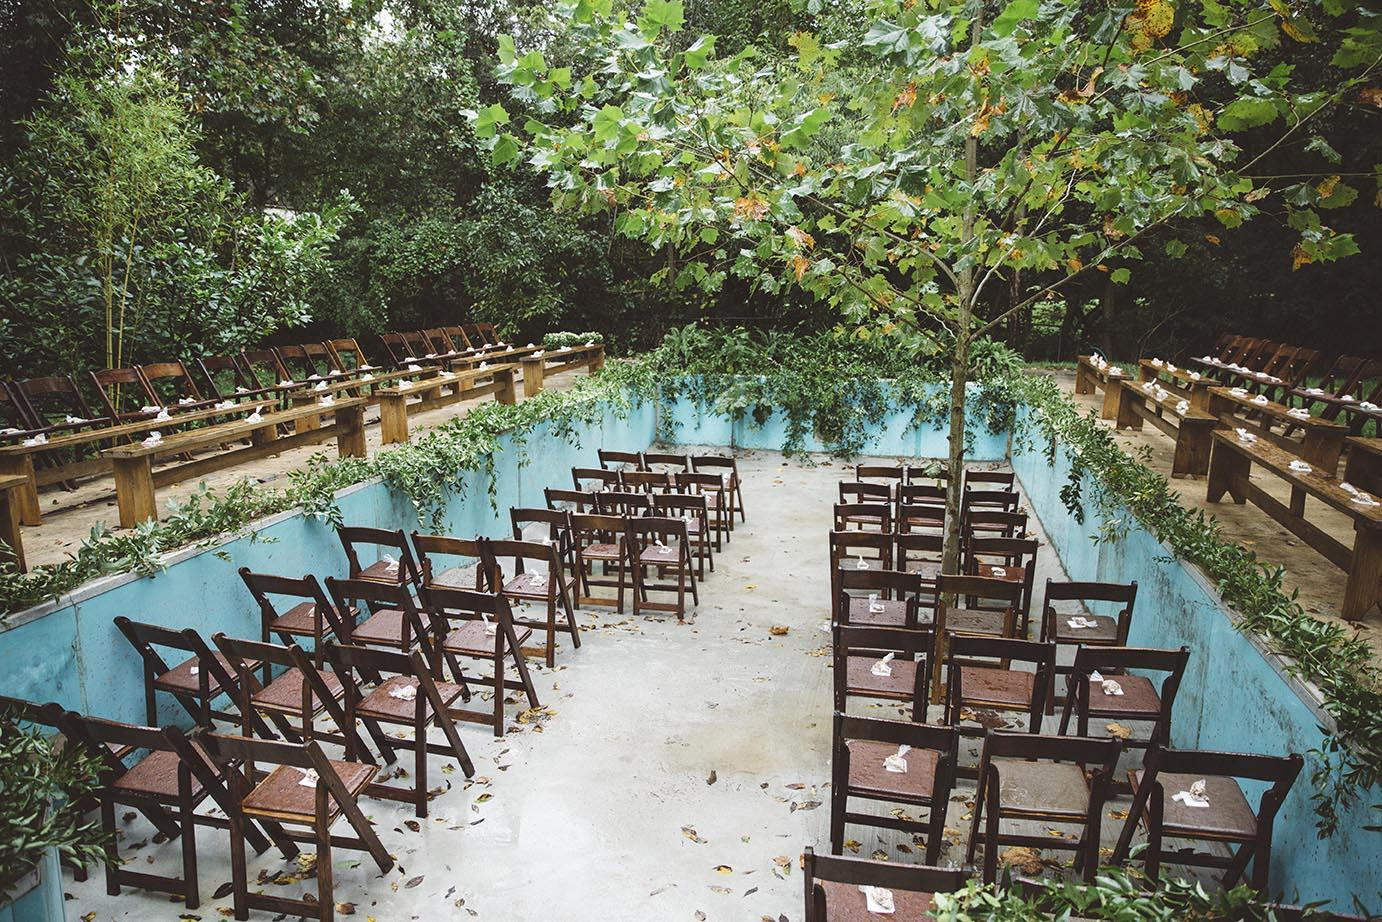 This Abandoned Pool Turned Into A Secret Garden Wedding